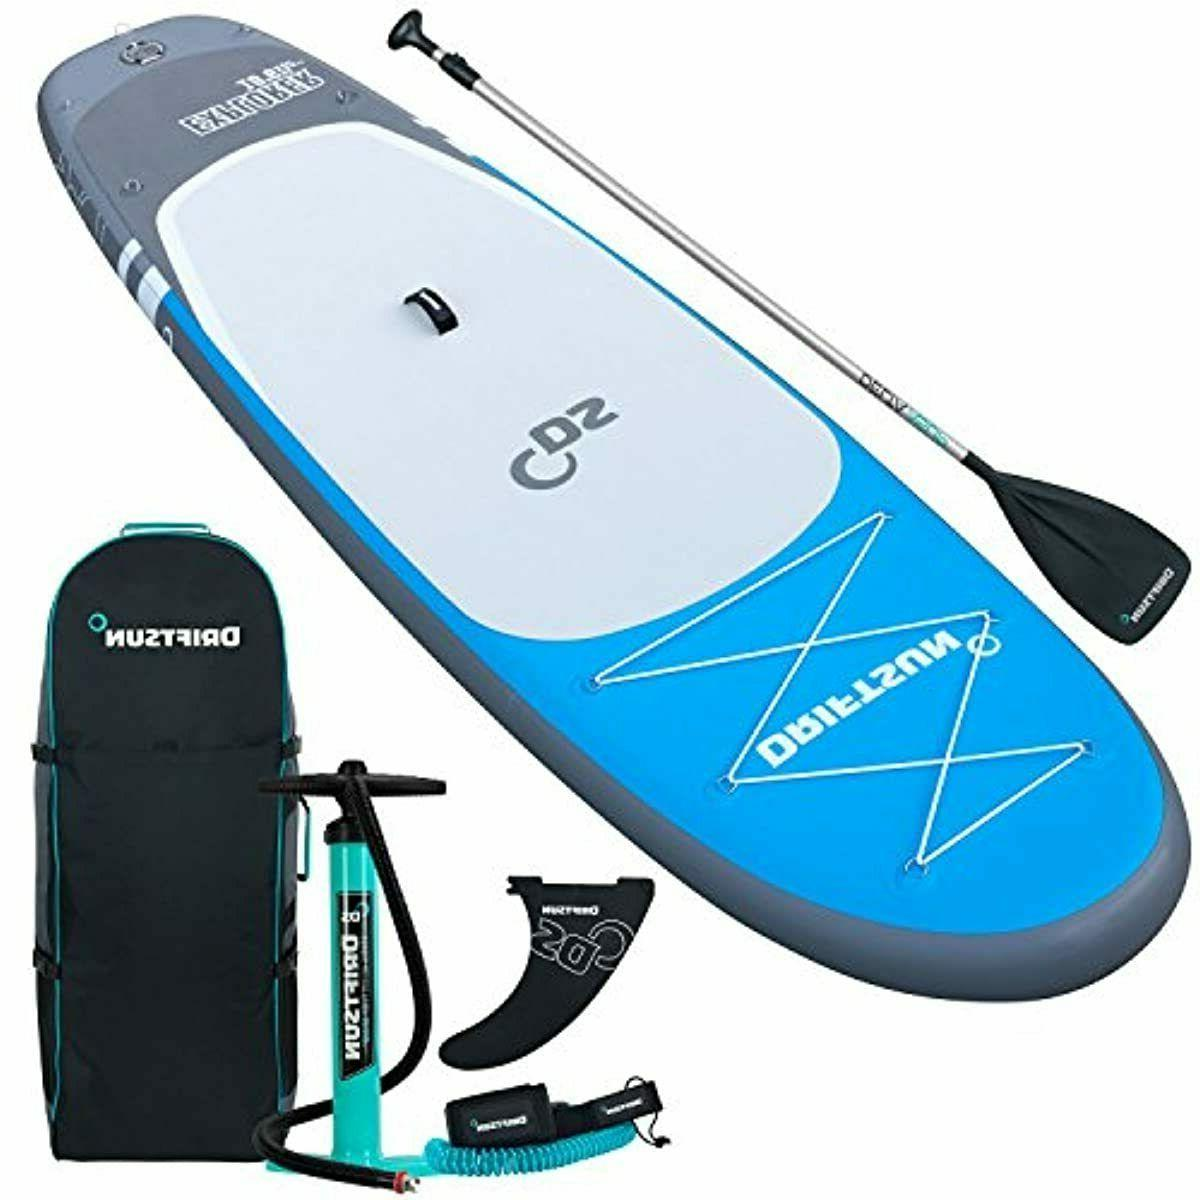 Driftsun Explorer Up Paddleboard 10 ft with Paddle,